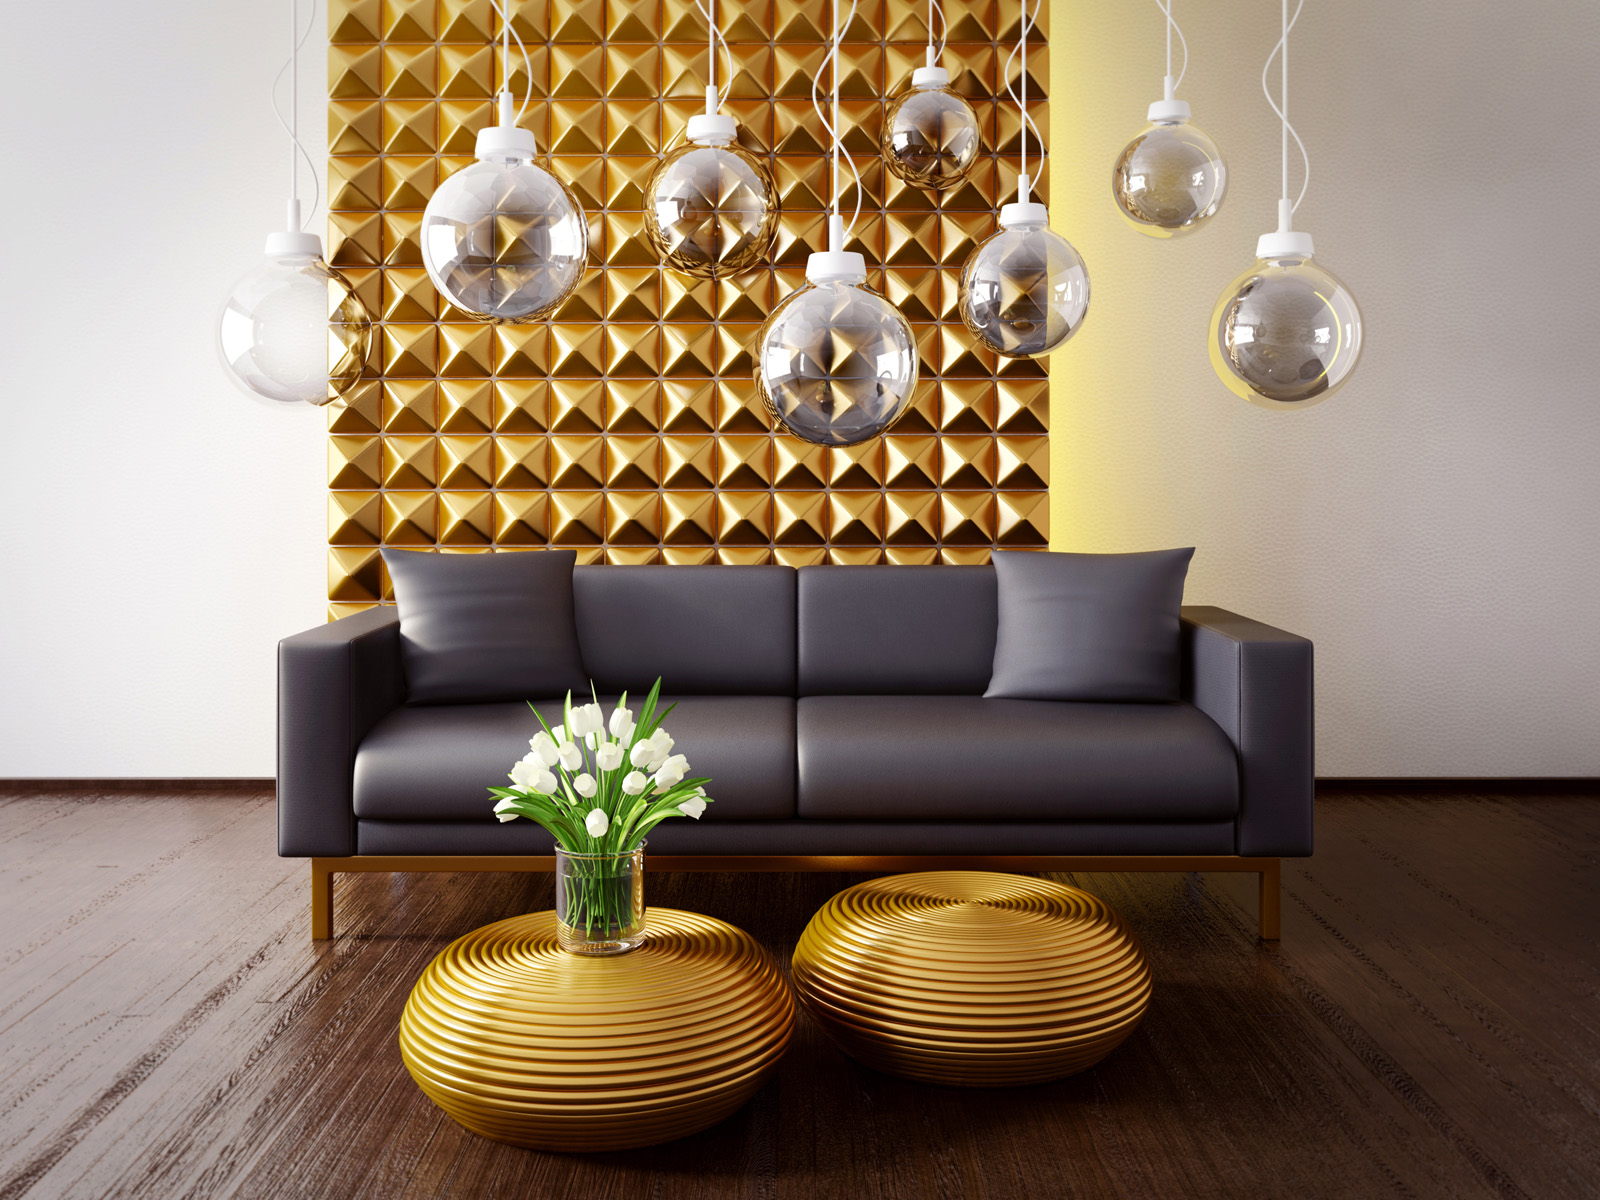 Sofa chandelier and floral decoration 51298